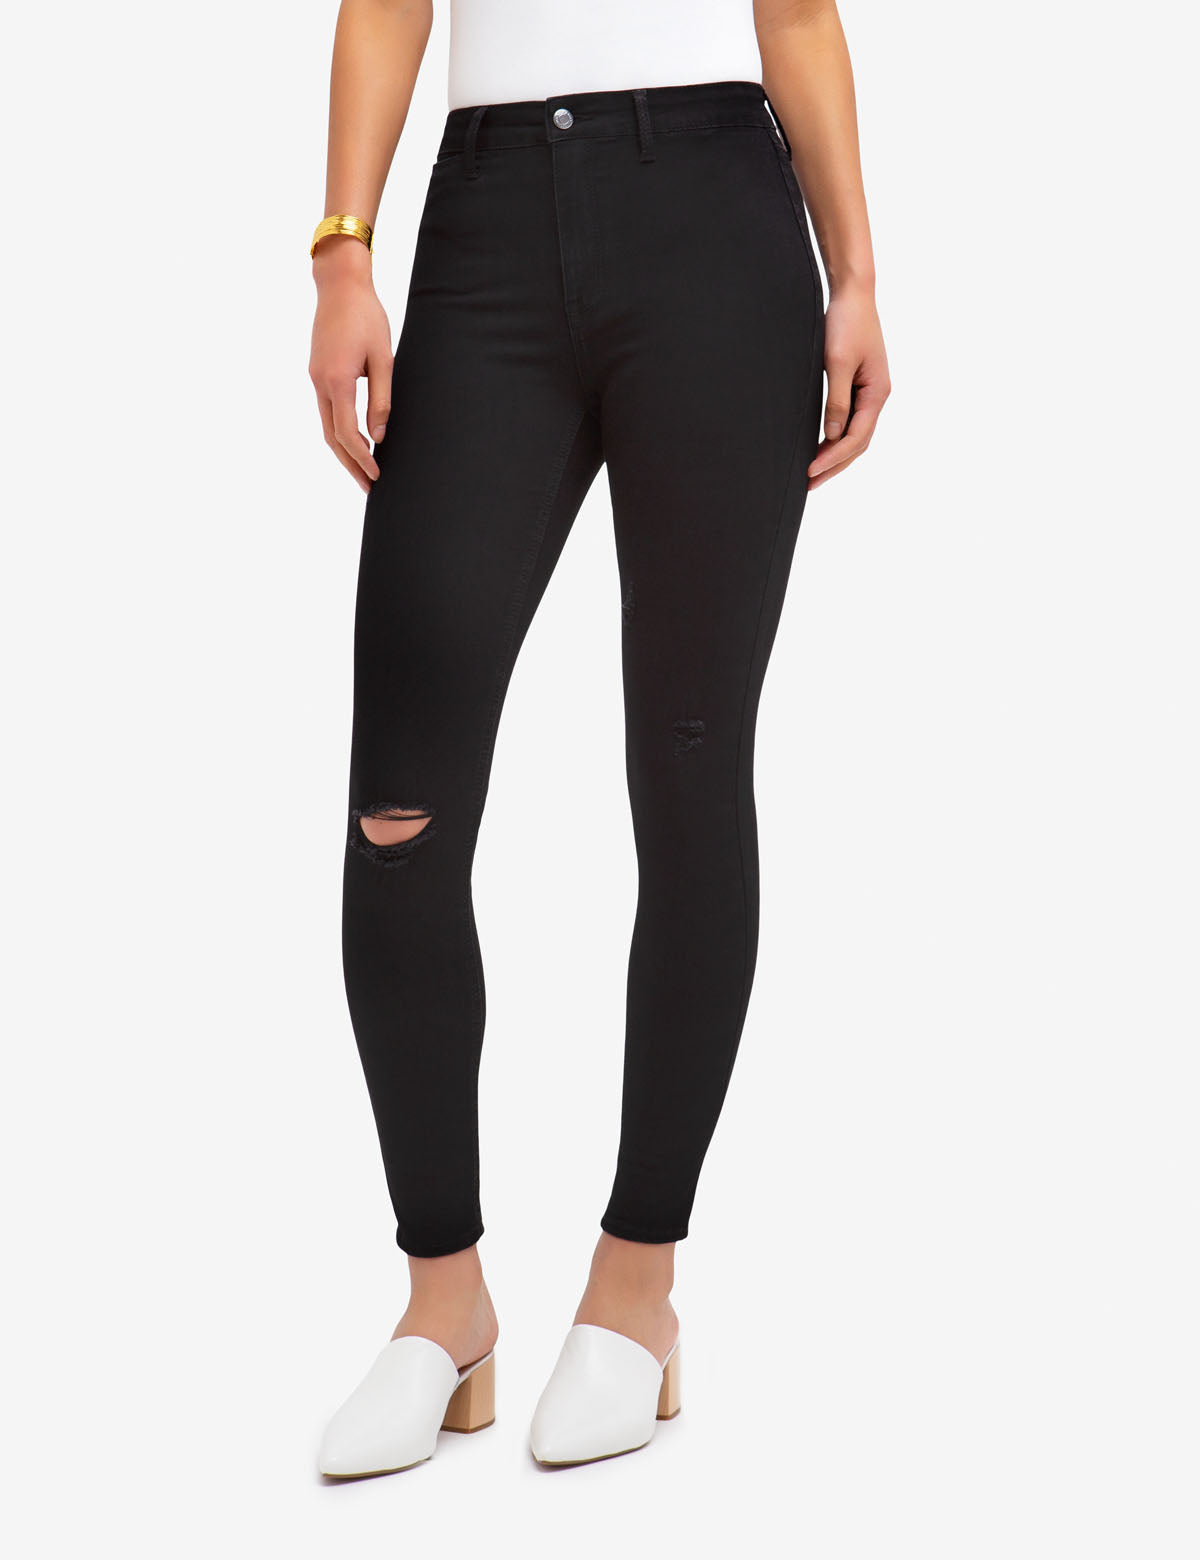 REPREVE® HIGH RISE DESTRUCTED JEGGING